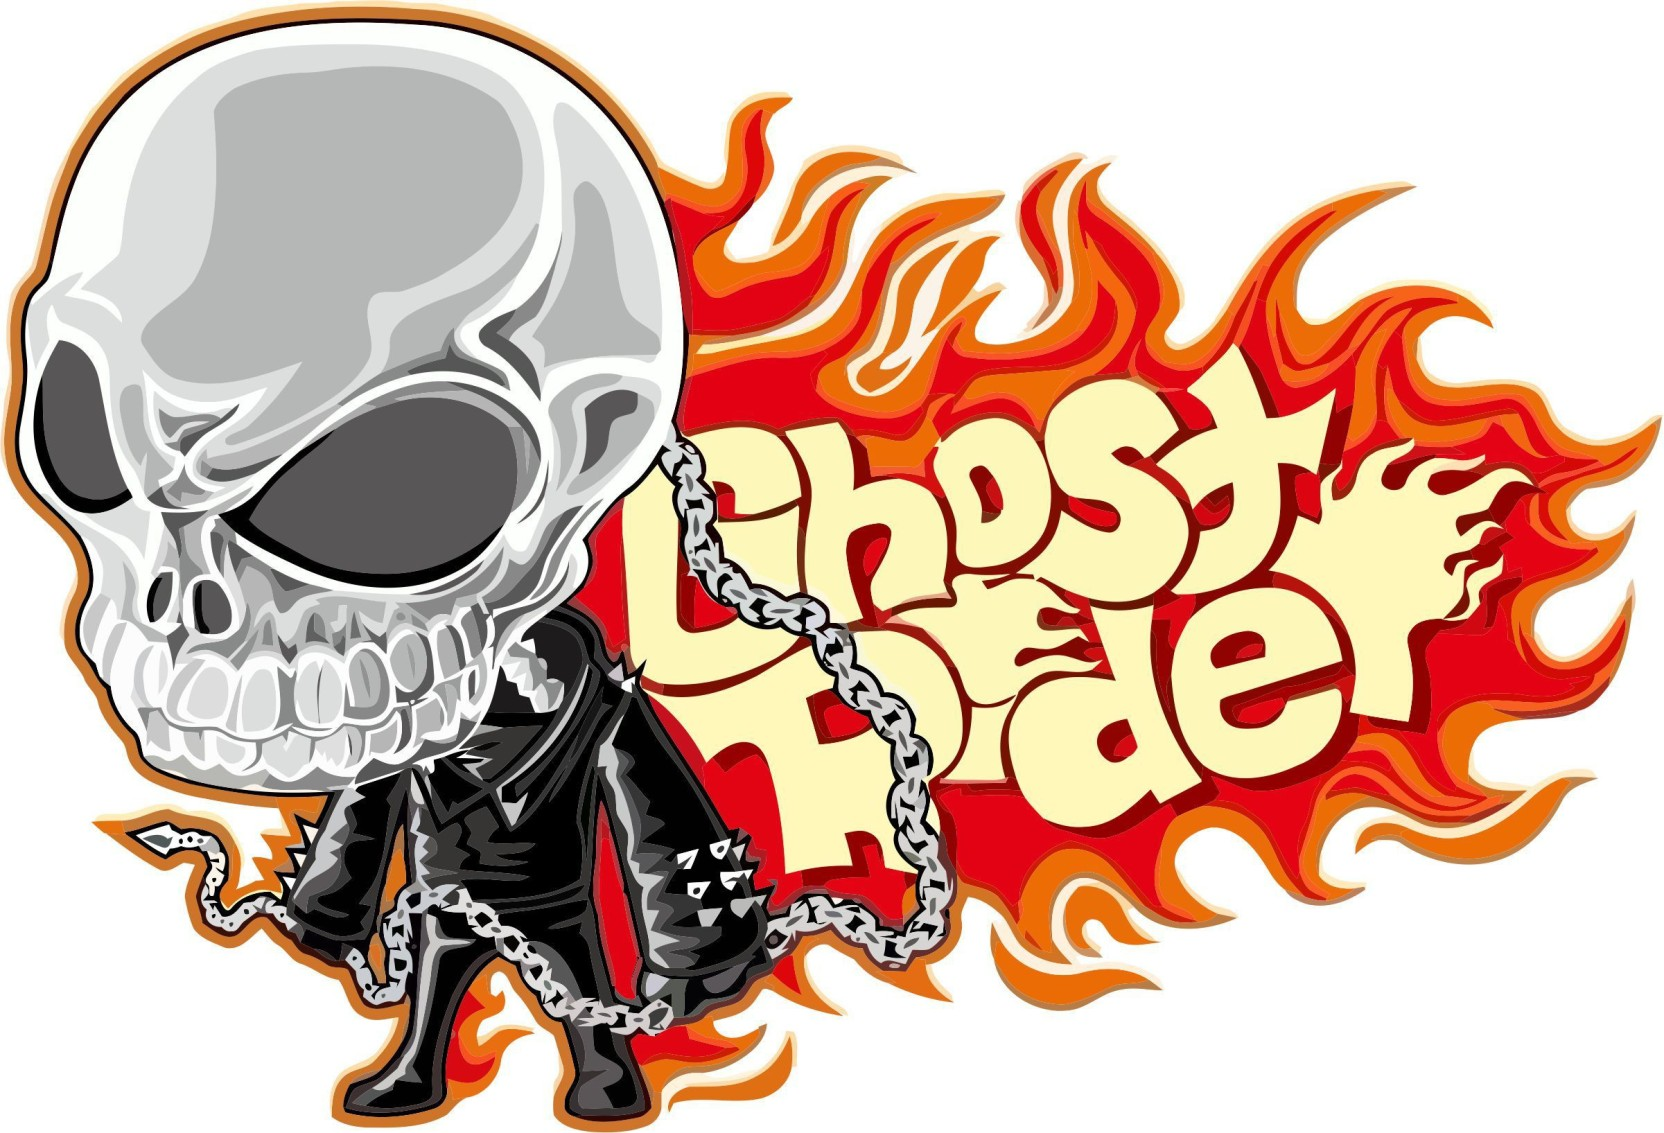 Total home tiny ghost rider iron on transfer stickers applique hot heat vinyl thermal transfers for t shirt clothes fabric decorationpack of 1 sticker